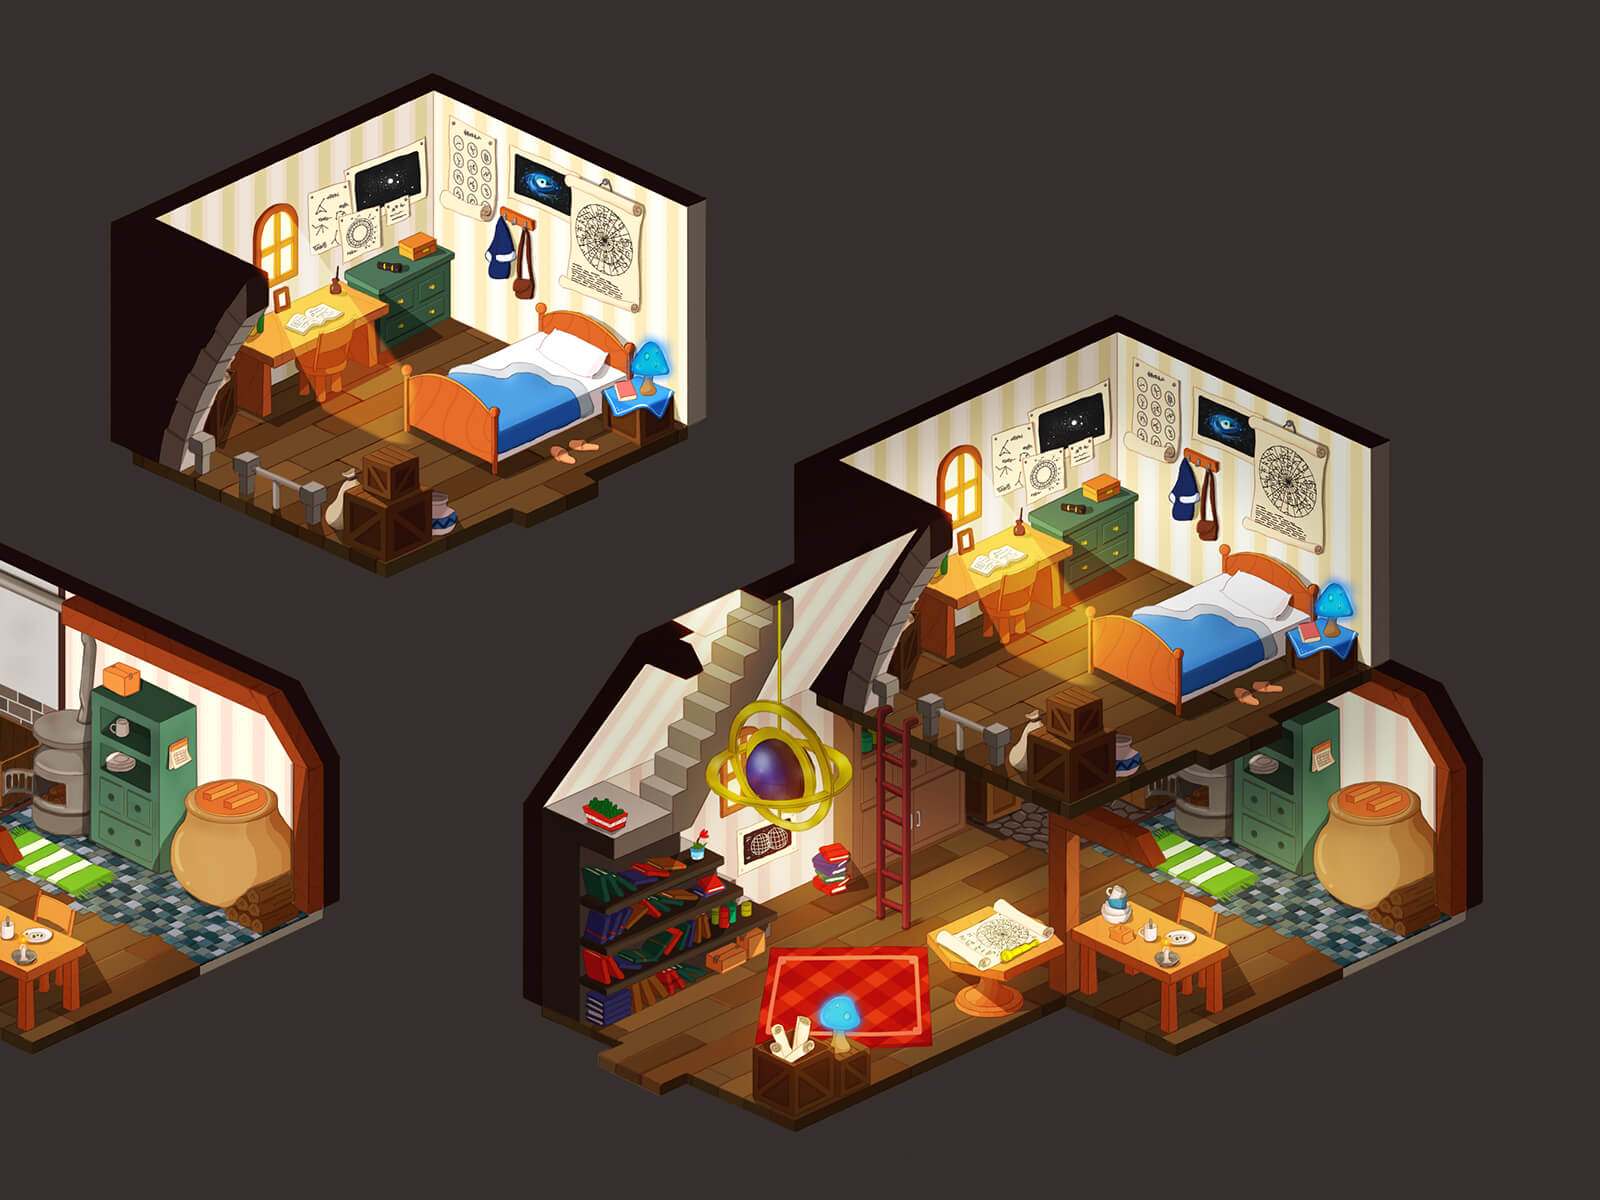 Isometric views of a bedroom and living room of a snug home with simple wooden furnishings and iron stove.